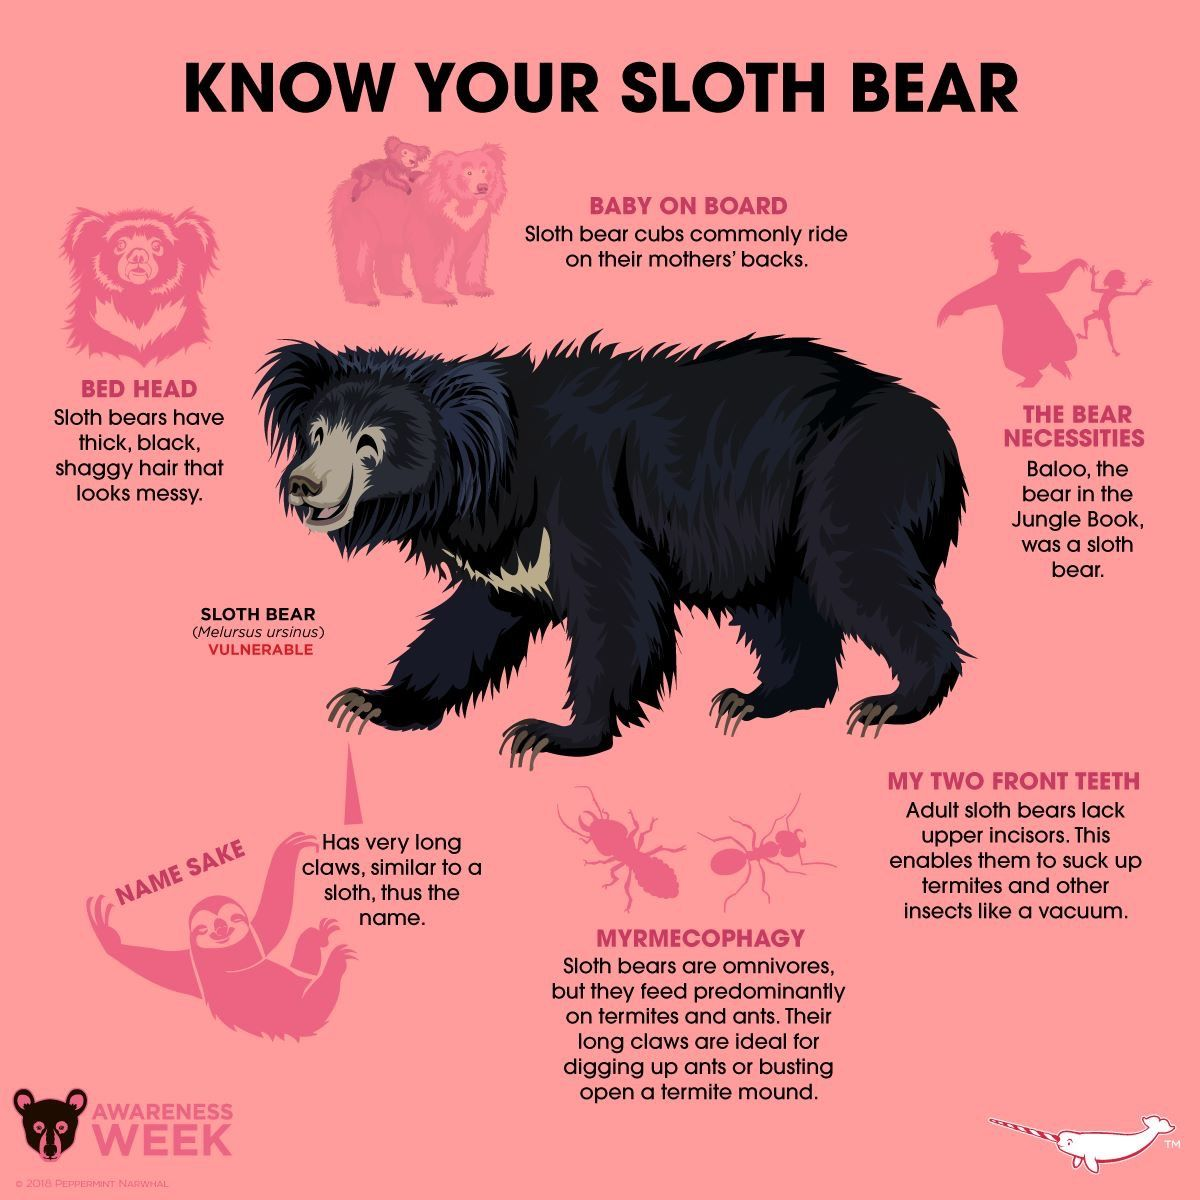 Know Your Sloth Bear